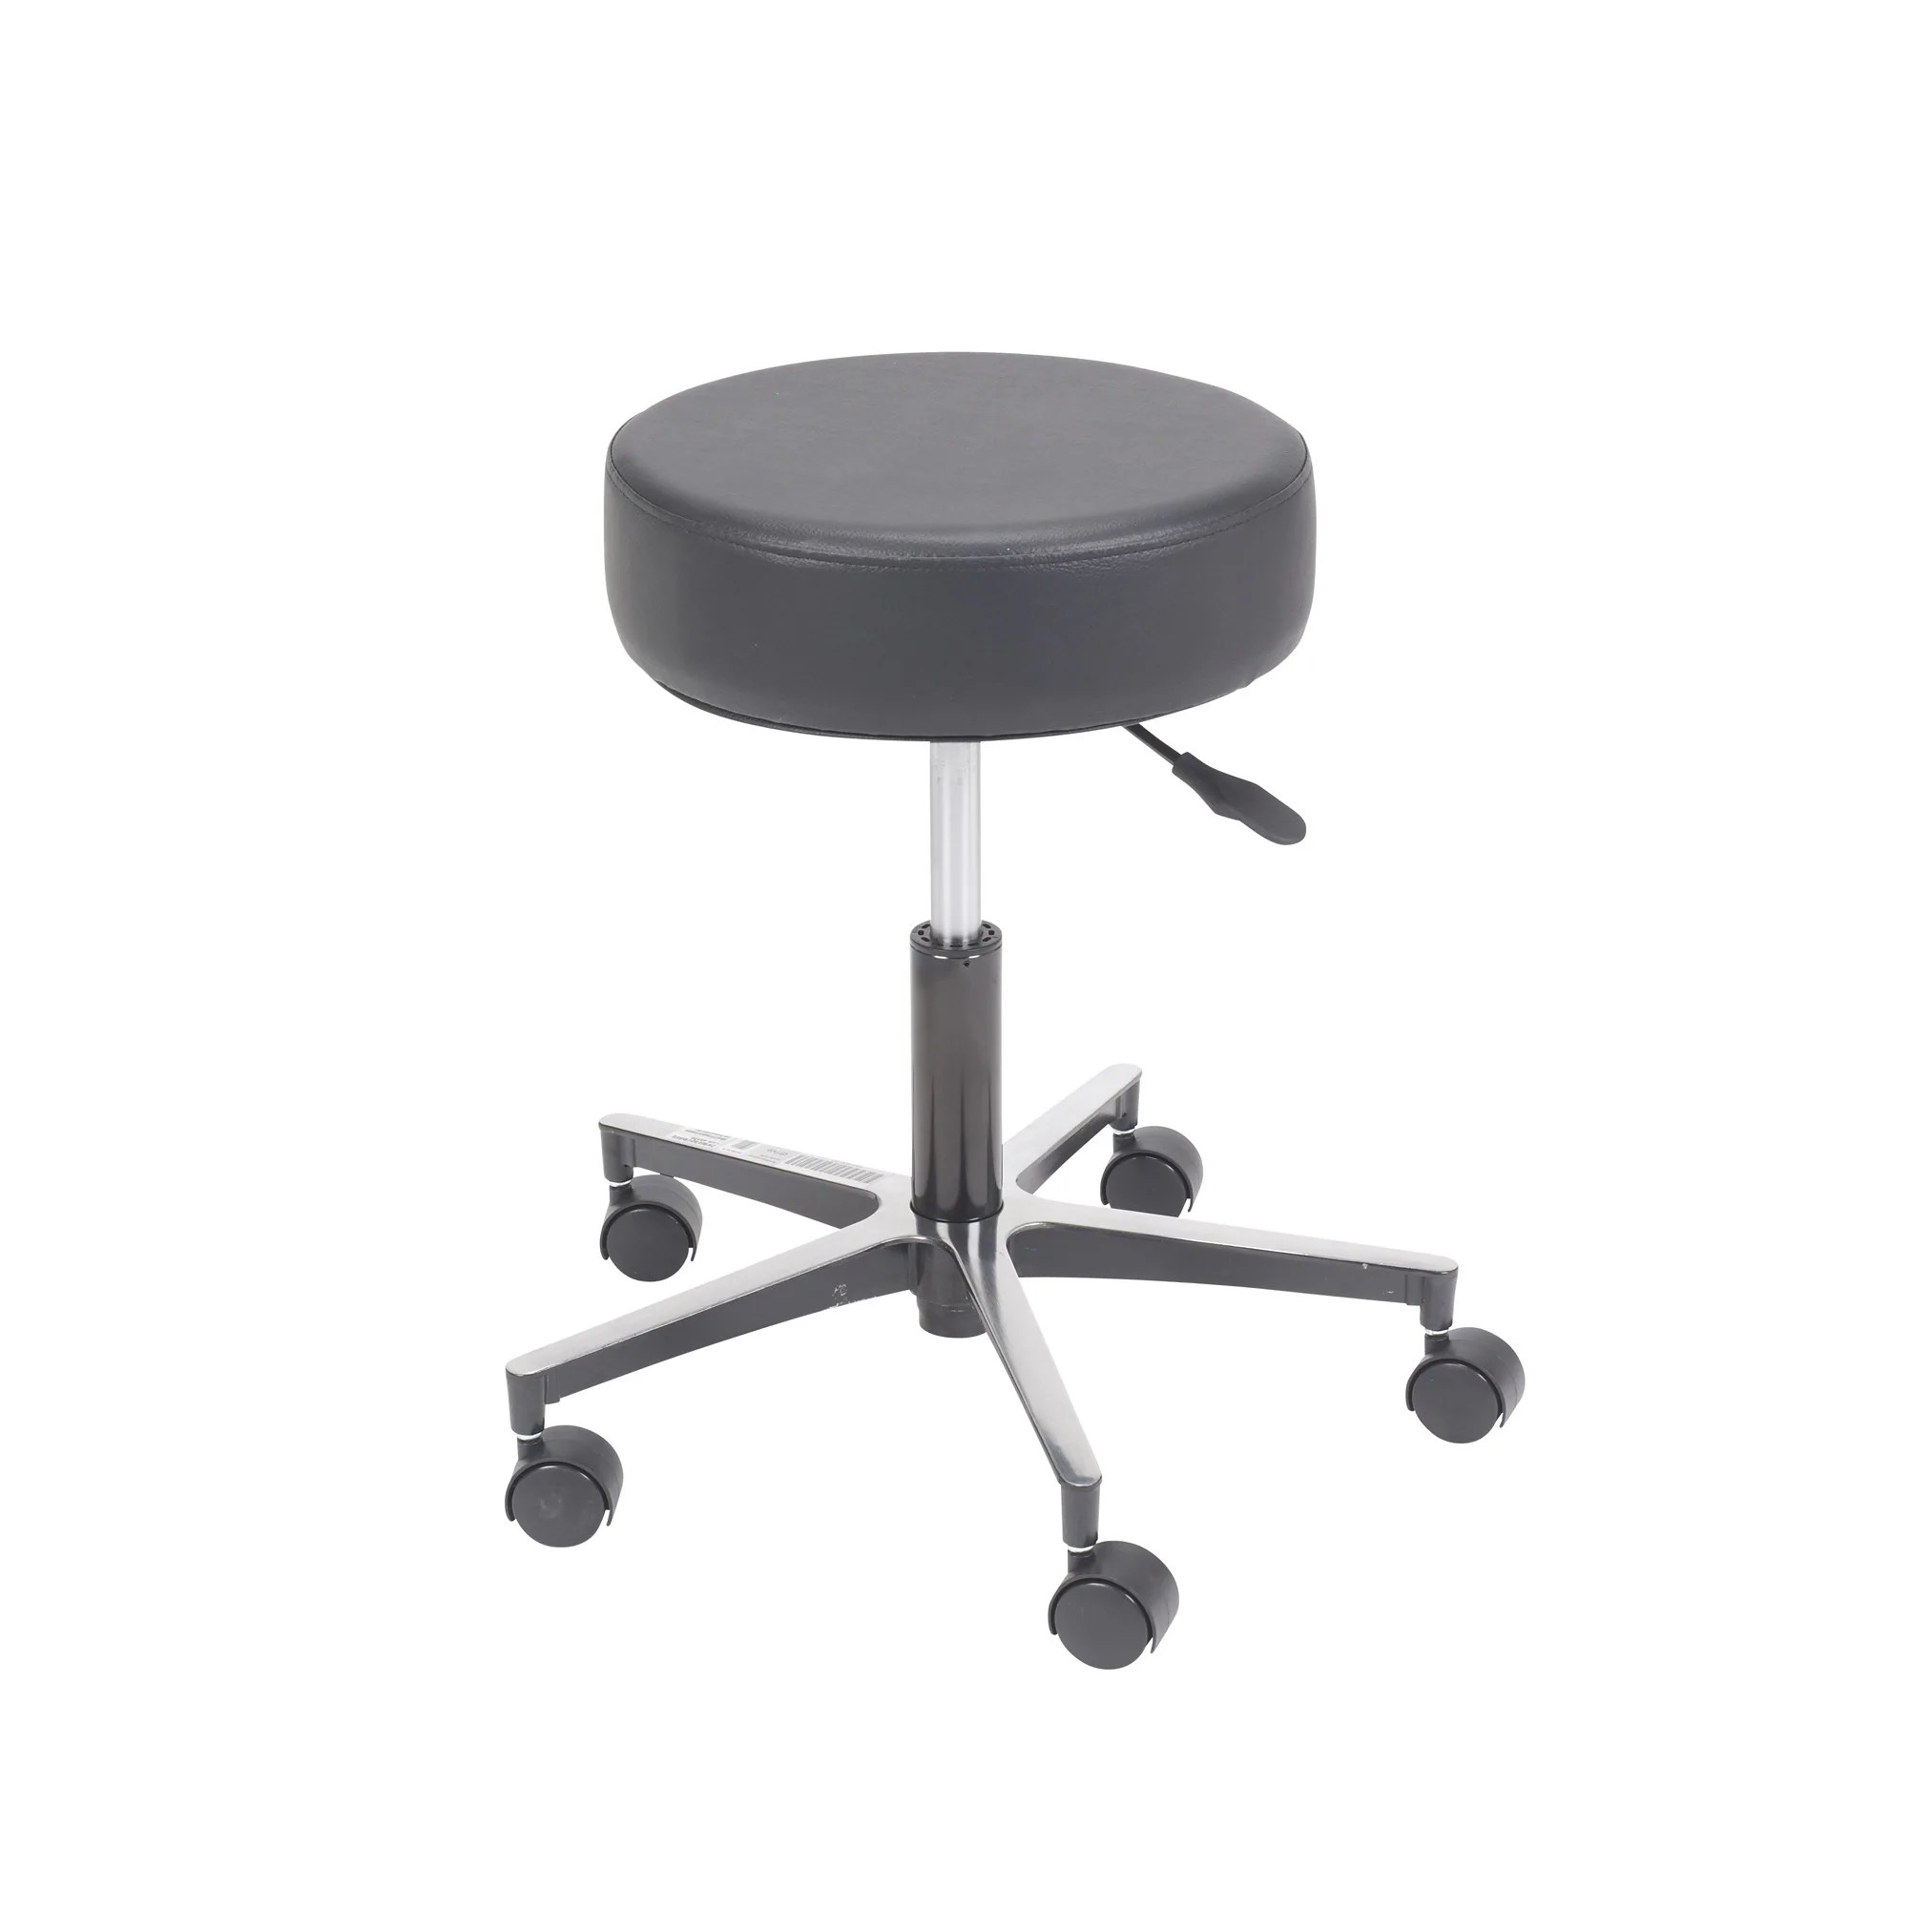 revolving chair parts hyderabad upholstered office padded seat pneumatic adjustable height stool